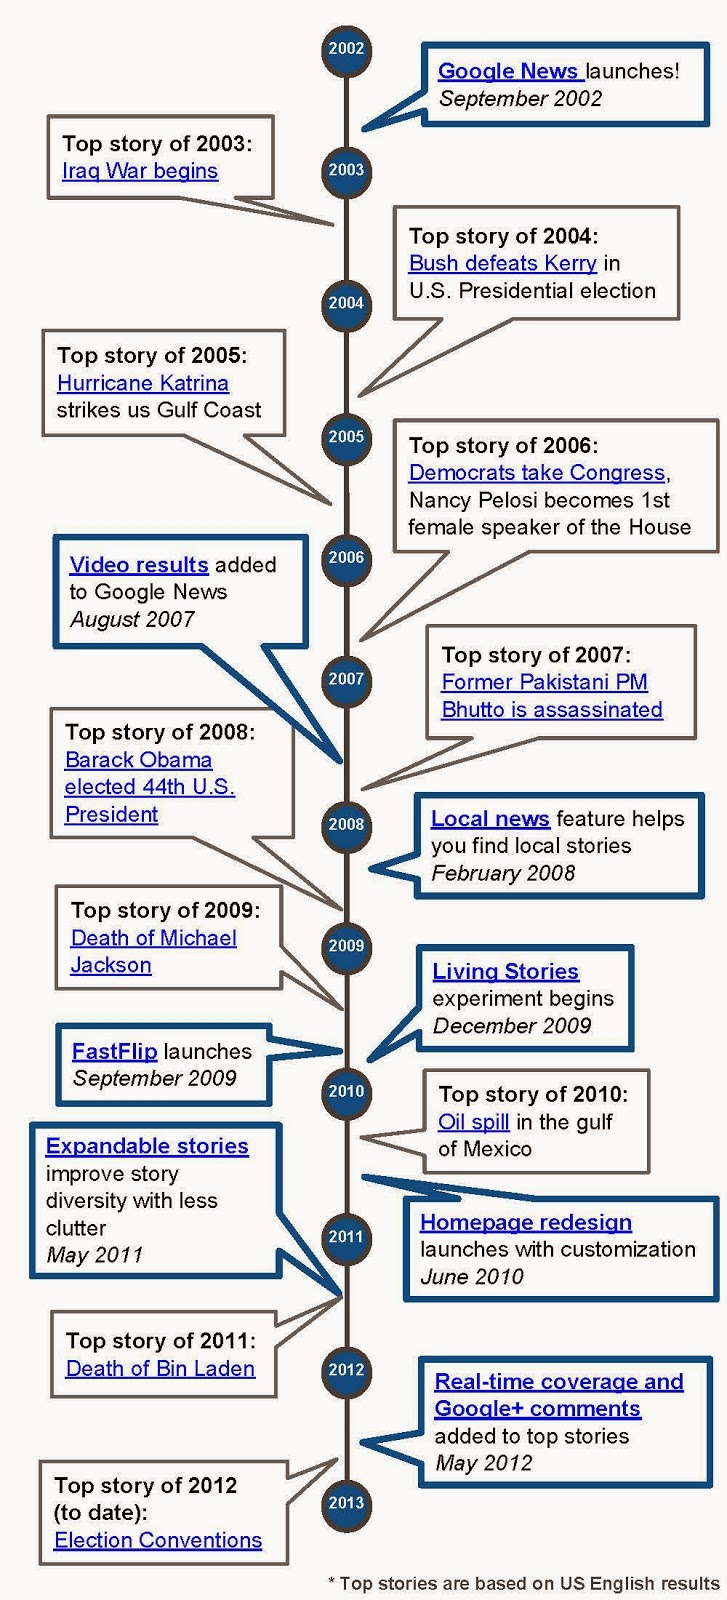 10 YEAR TIMELINE OF GOOGLE NEWS